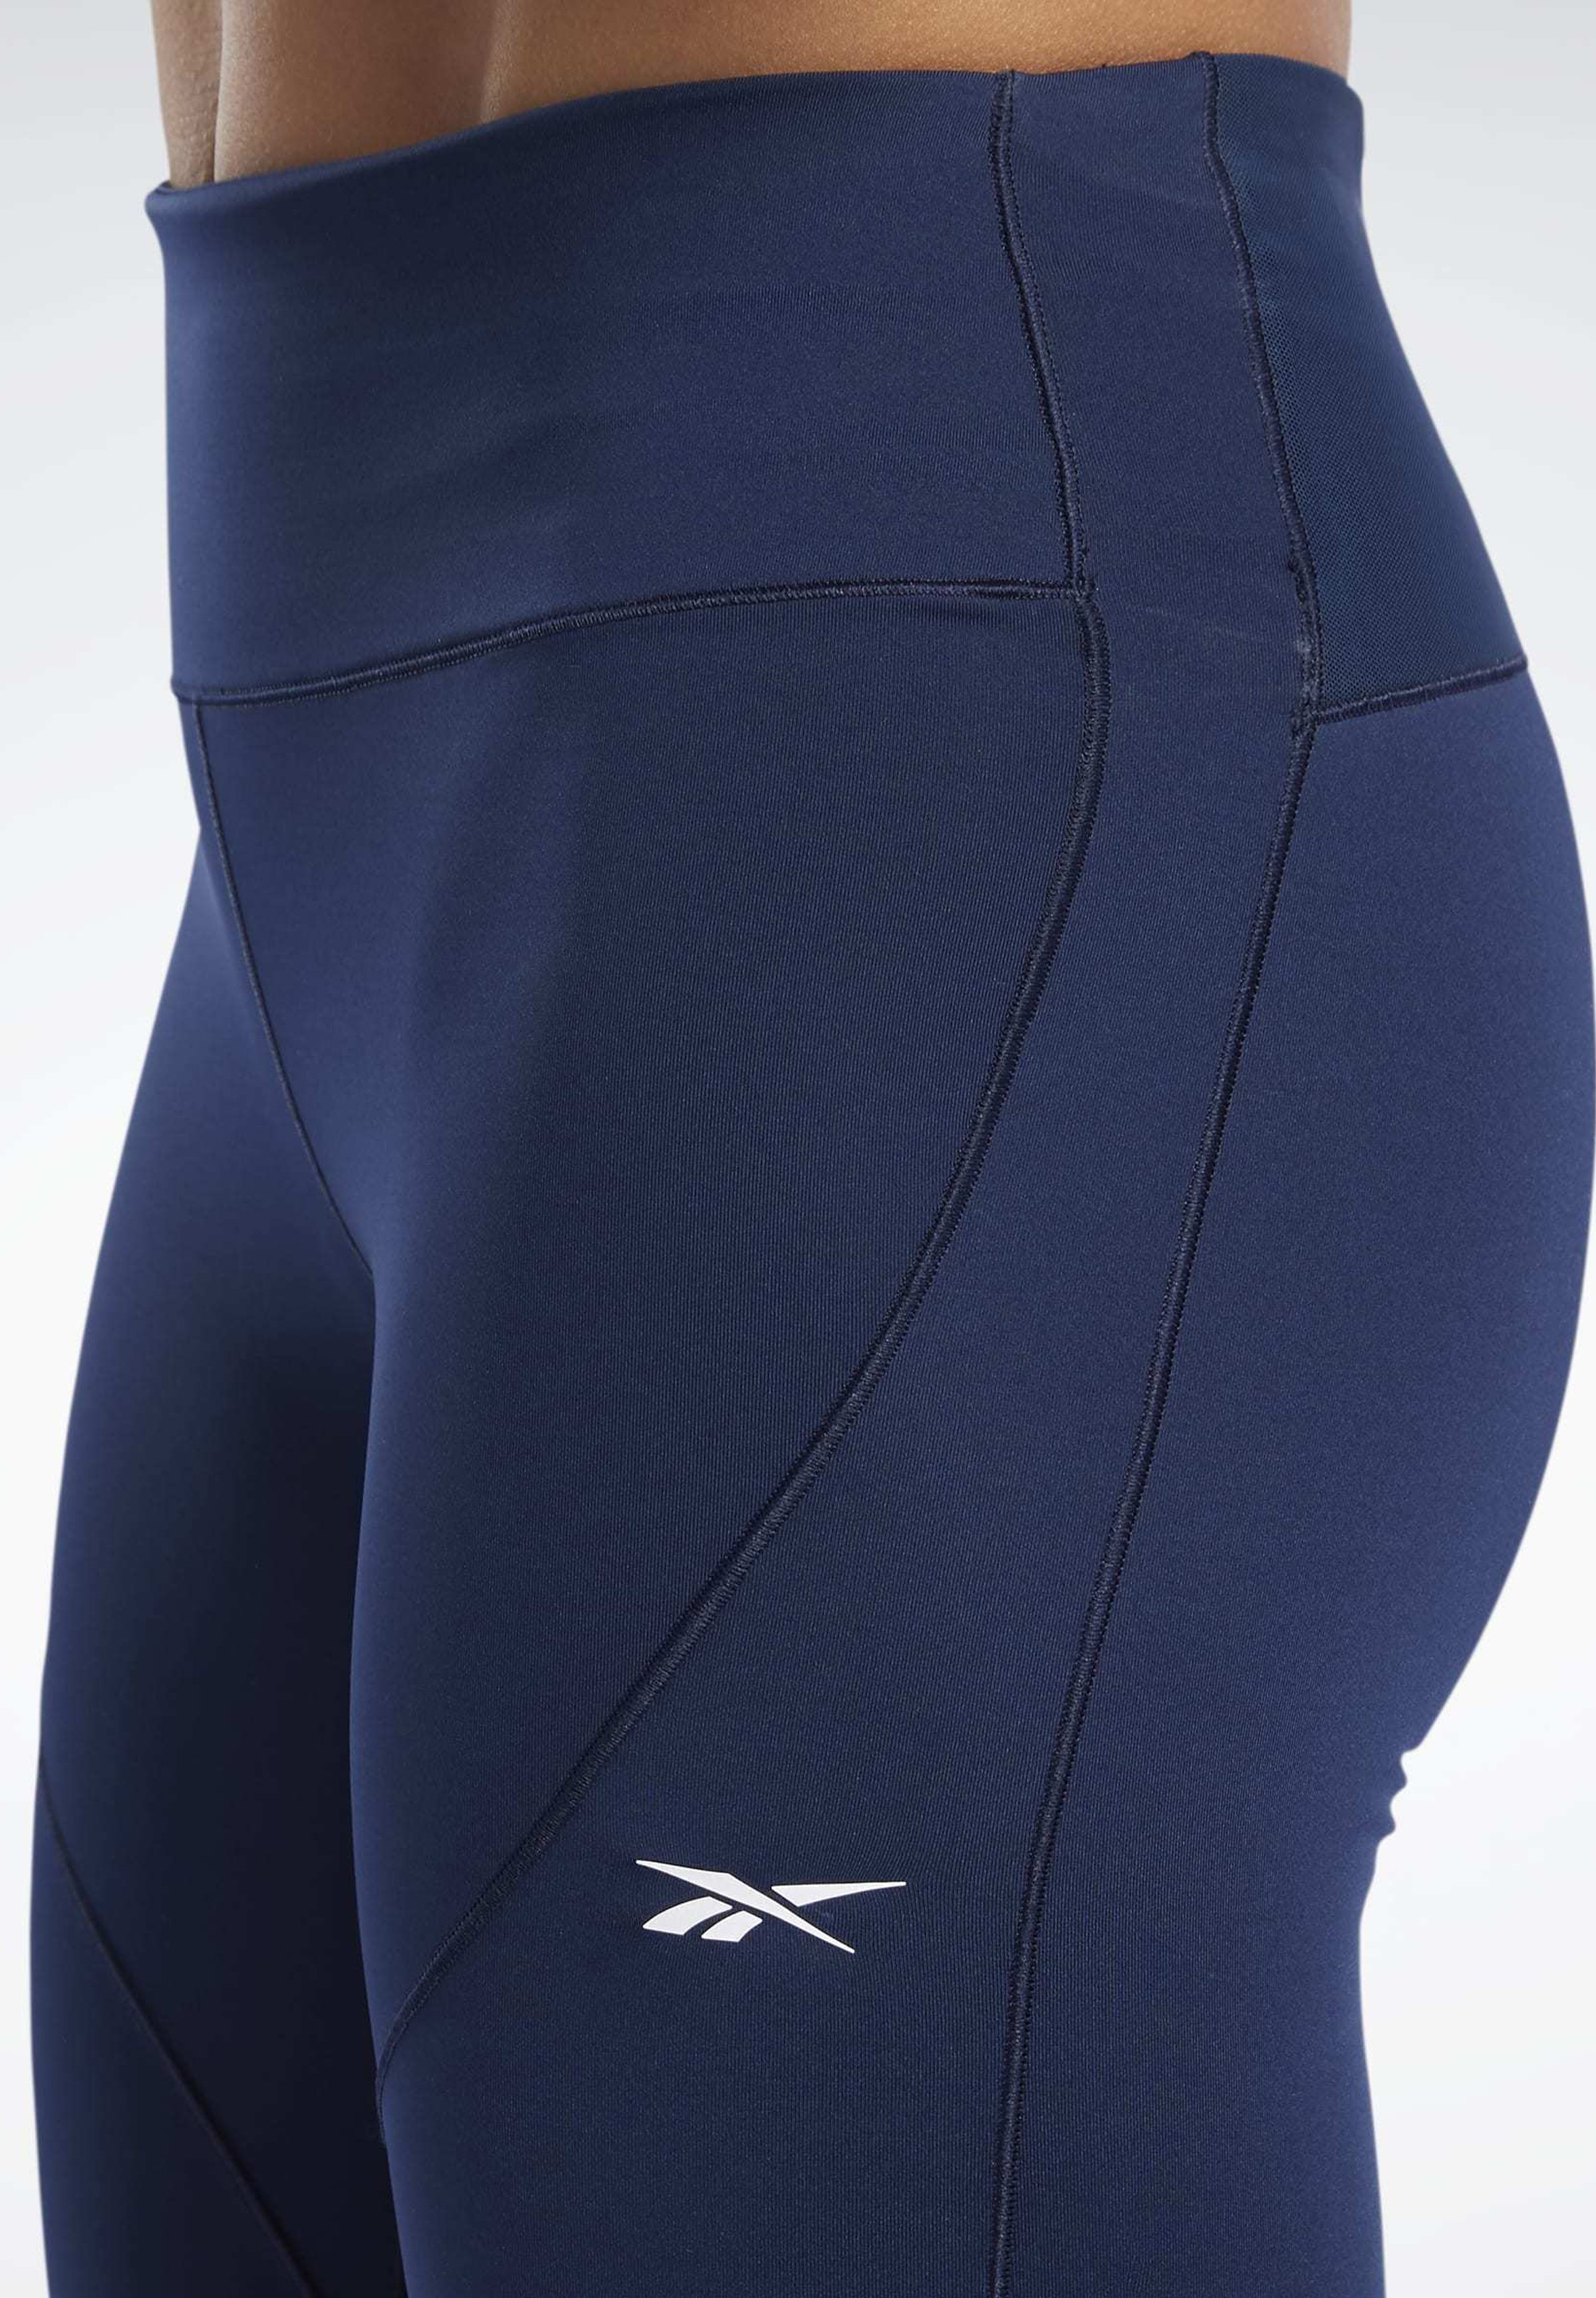 Reebok UNITED BY FITNESS LUX PERFORM TIGHTS - Collant - blue